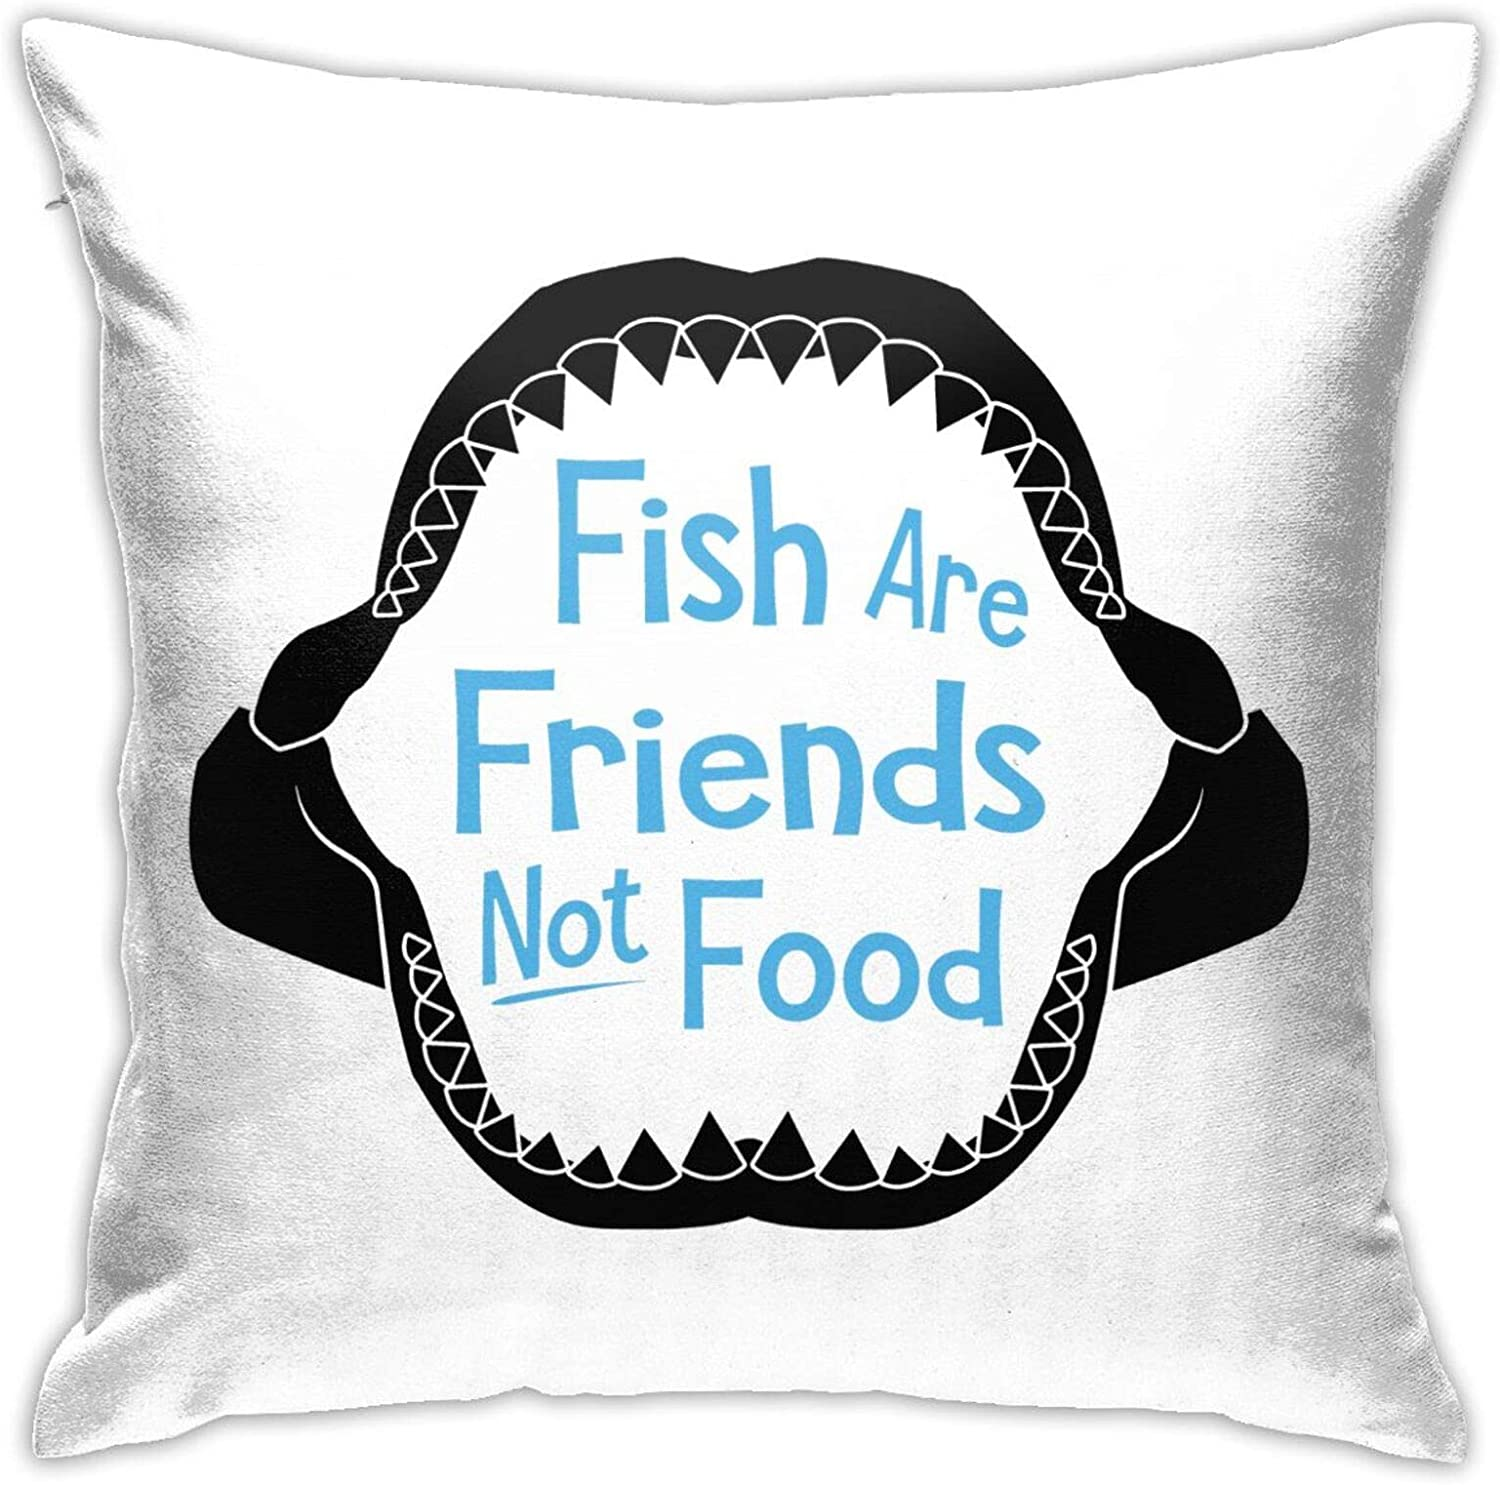 Fish are Friends Not Food Square Throw Pillow Case with Zipper, Throw Pillow Case Cushion Cover Home/Office Sofa Decor 22x22 Inch